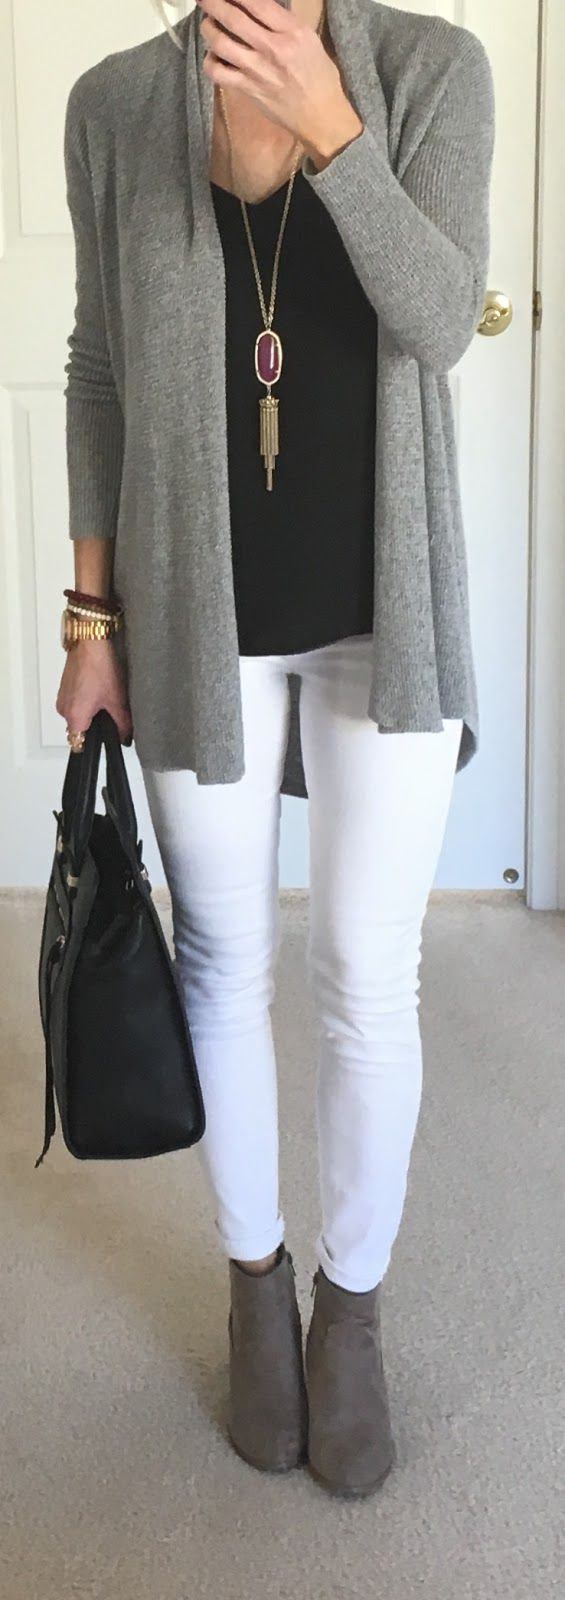 Best 25  Cardigans ideas on Pinterest | Fall clothes, Fall clothes ...